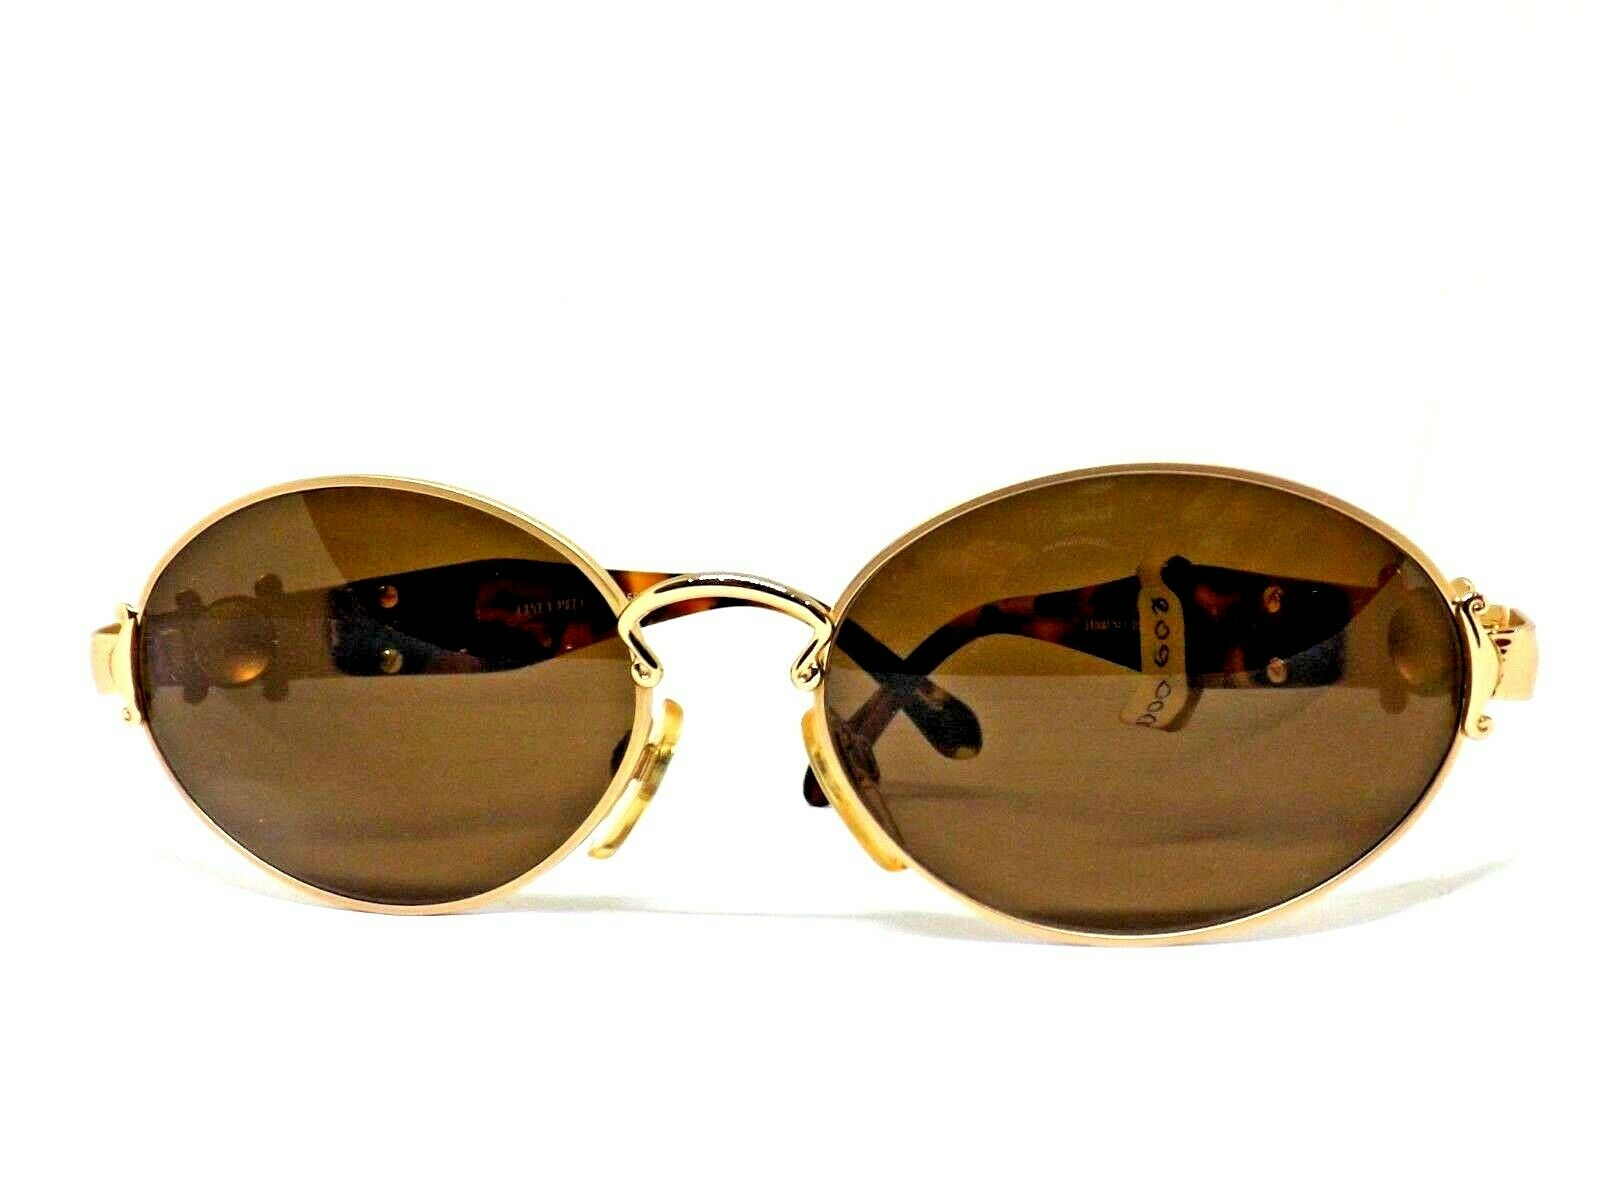 Sunglasses LINEA PITTI Florence Ages 80 Man Woman Oval Retro Made IN Italy